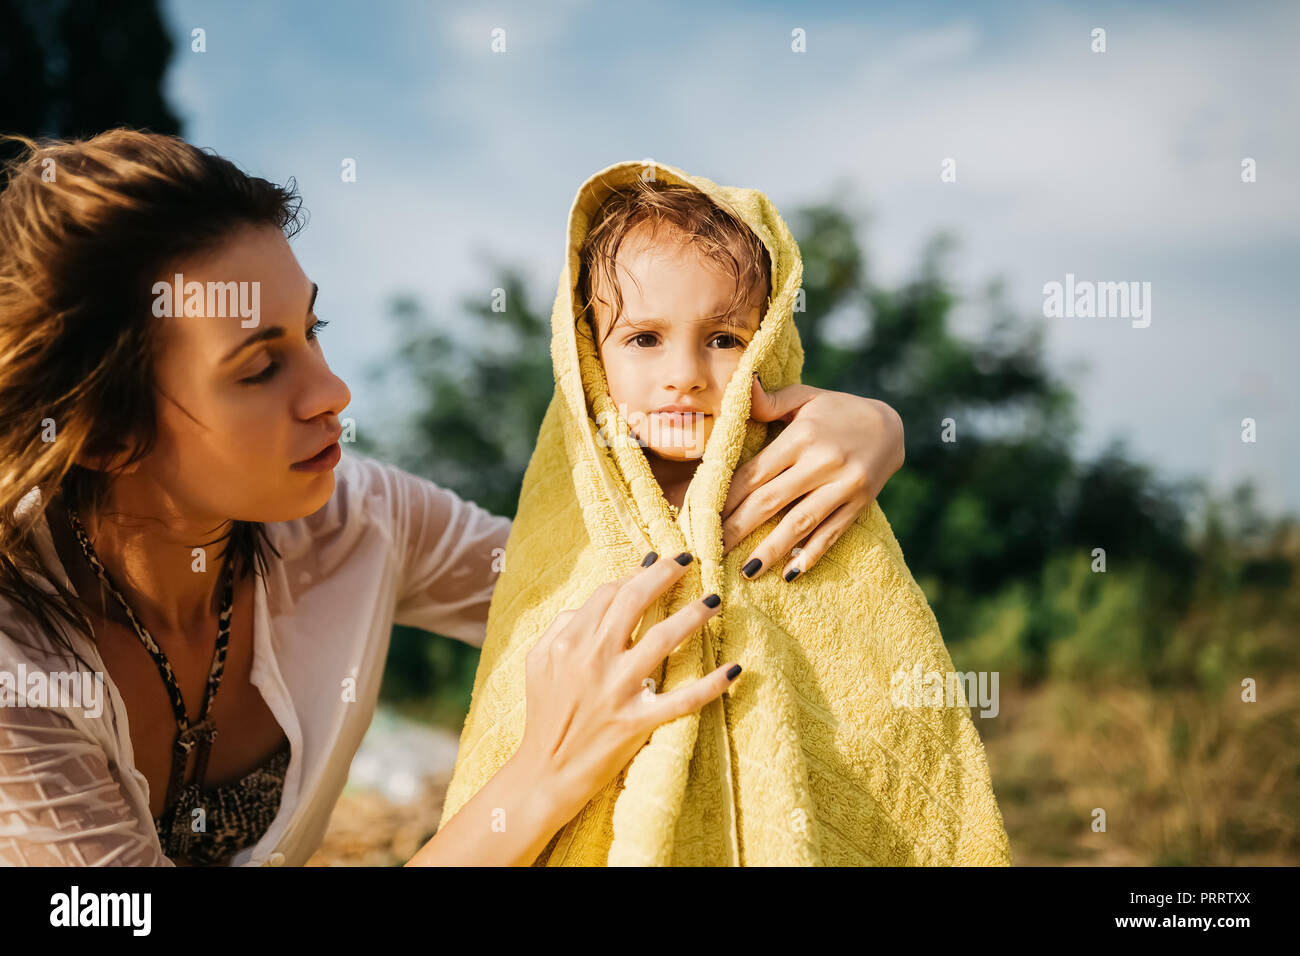 mother covering daughter with towel after swimming in water - Stock Image